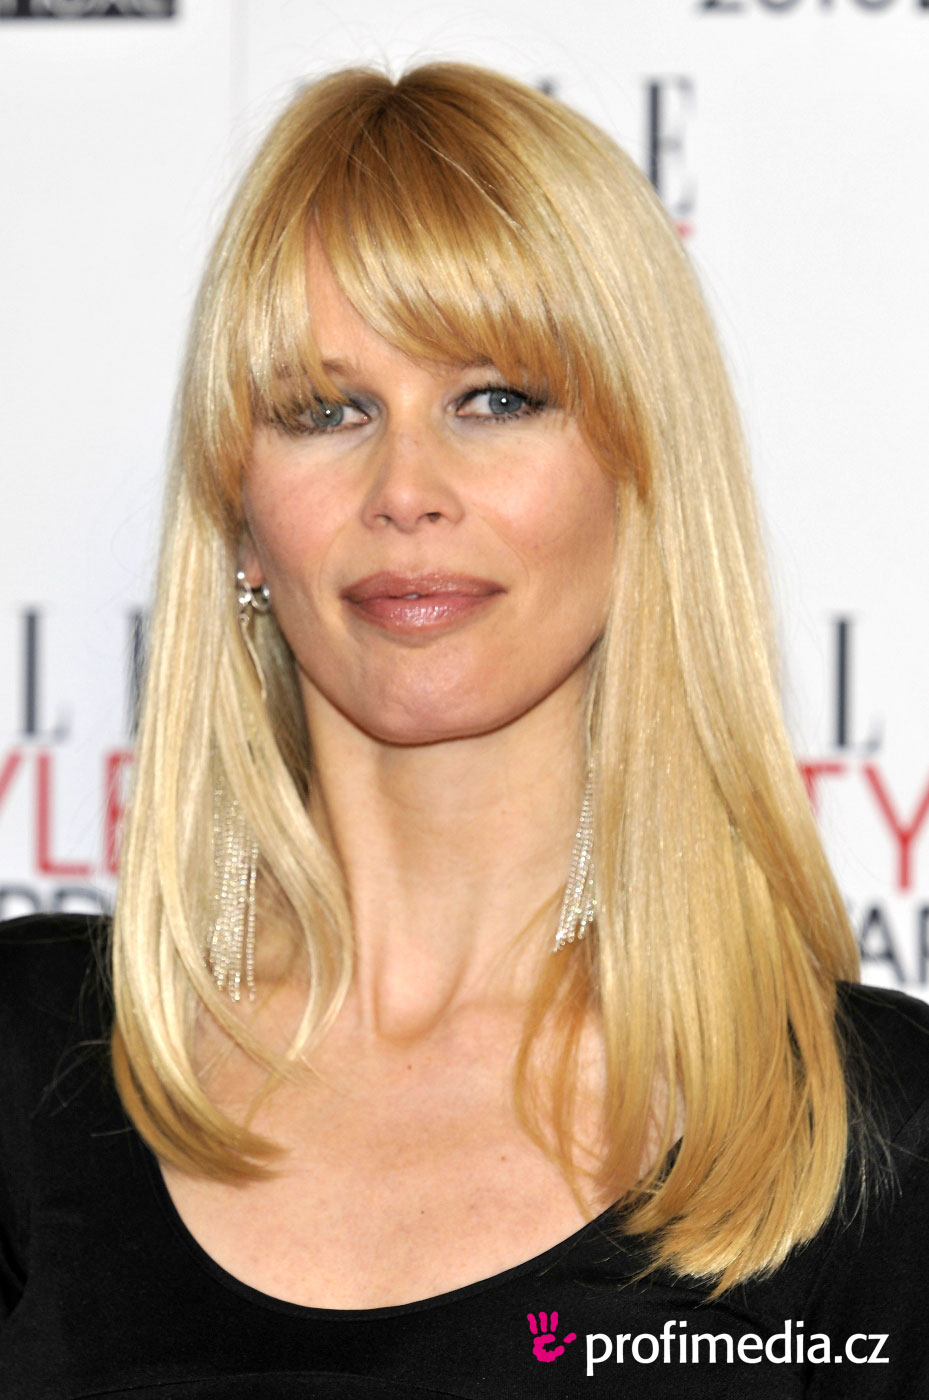 claudia schiffer dietclaudia schiffer young, claudia schiffer 90s, claudia schiffer daughter, claudia schiffer 2017, claudia schiffer guess, claudia schiffer fitness, claudia schiffer vk, claudia schiffer photo, claudia schiffer 2016, claudia schiffer vogue, claudia schiffer биография на английском, claudia schiffer wiki, claudia schiffer interview, claudia schiffer kinder, claudia schiffer wikipedia, claudia schiffer collection, claudia schiffer diet, claudia schiffer 1987, claudia schiffer model, claudia schiffer cindy crawford